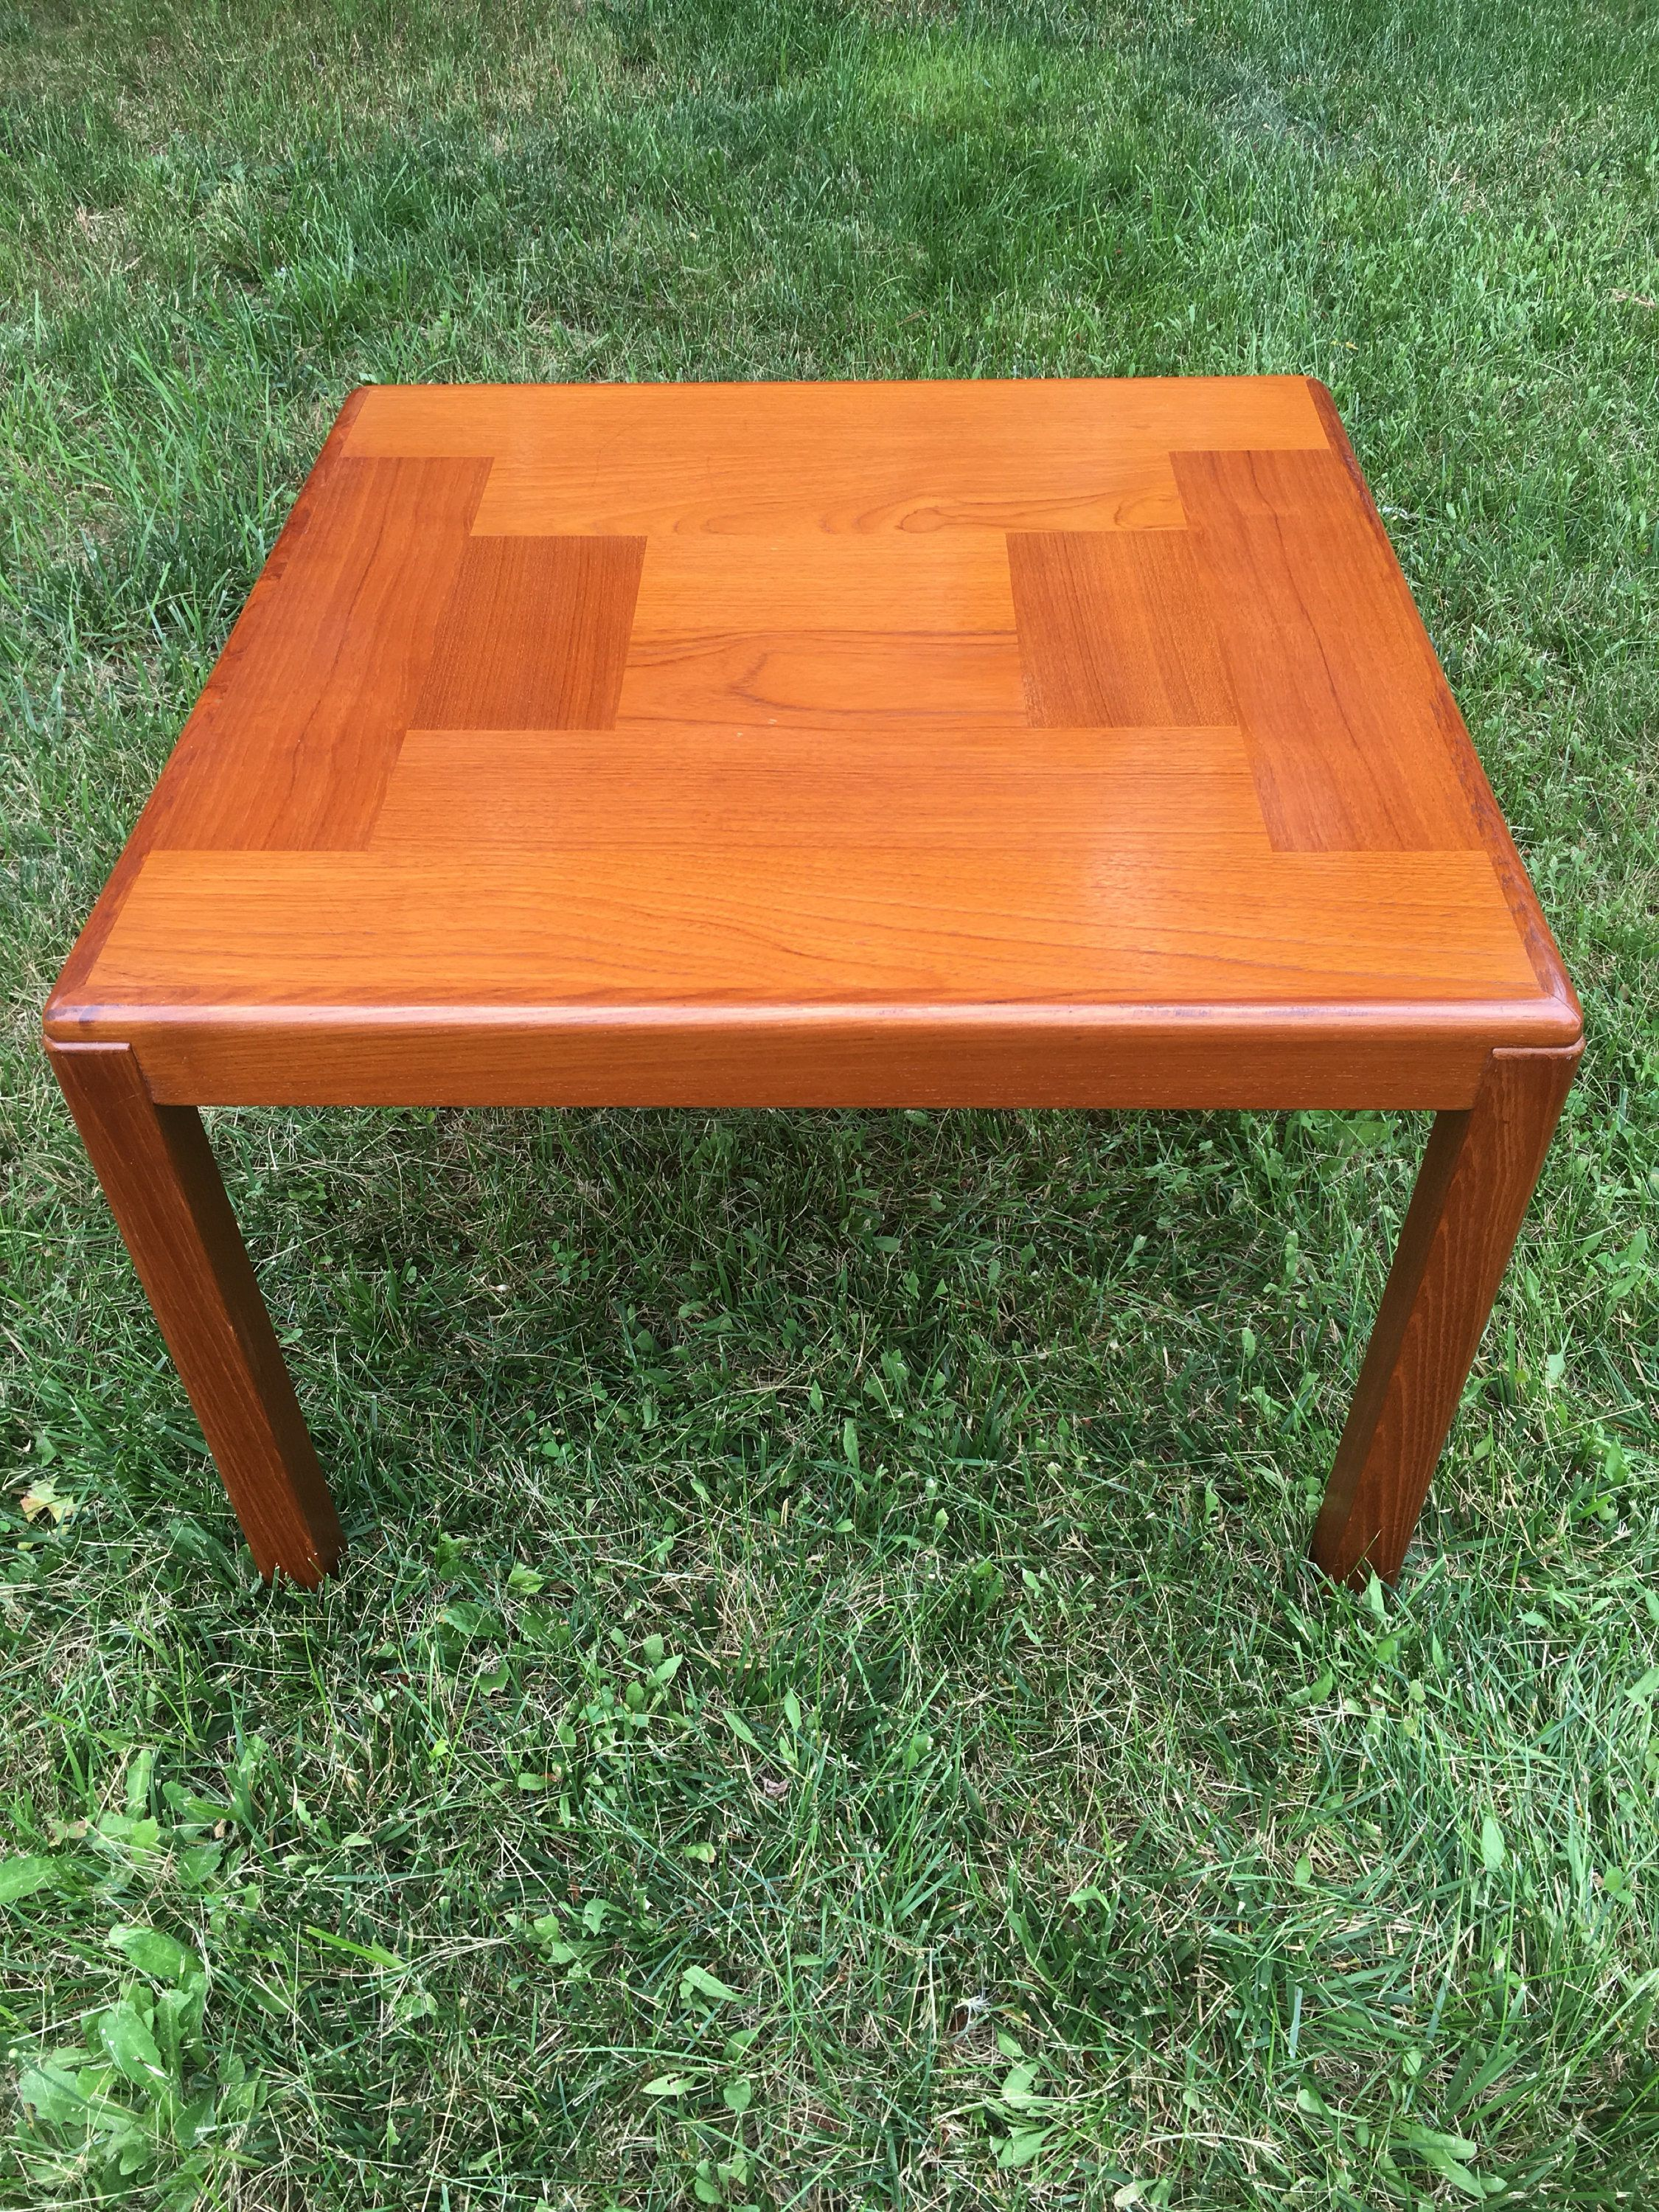 Mid century modern teak side table large danish modern teak side mid century modern teak side table large danish modern teak side table or small coffee table vejle stole made in denmark teak end table geotapseo Image collections